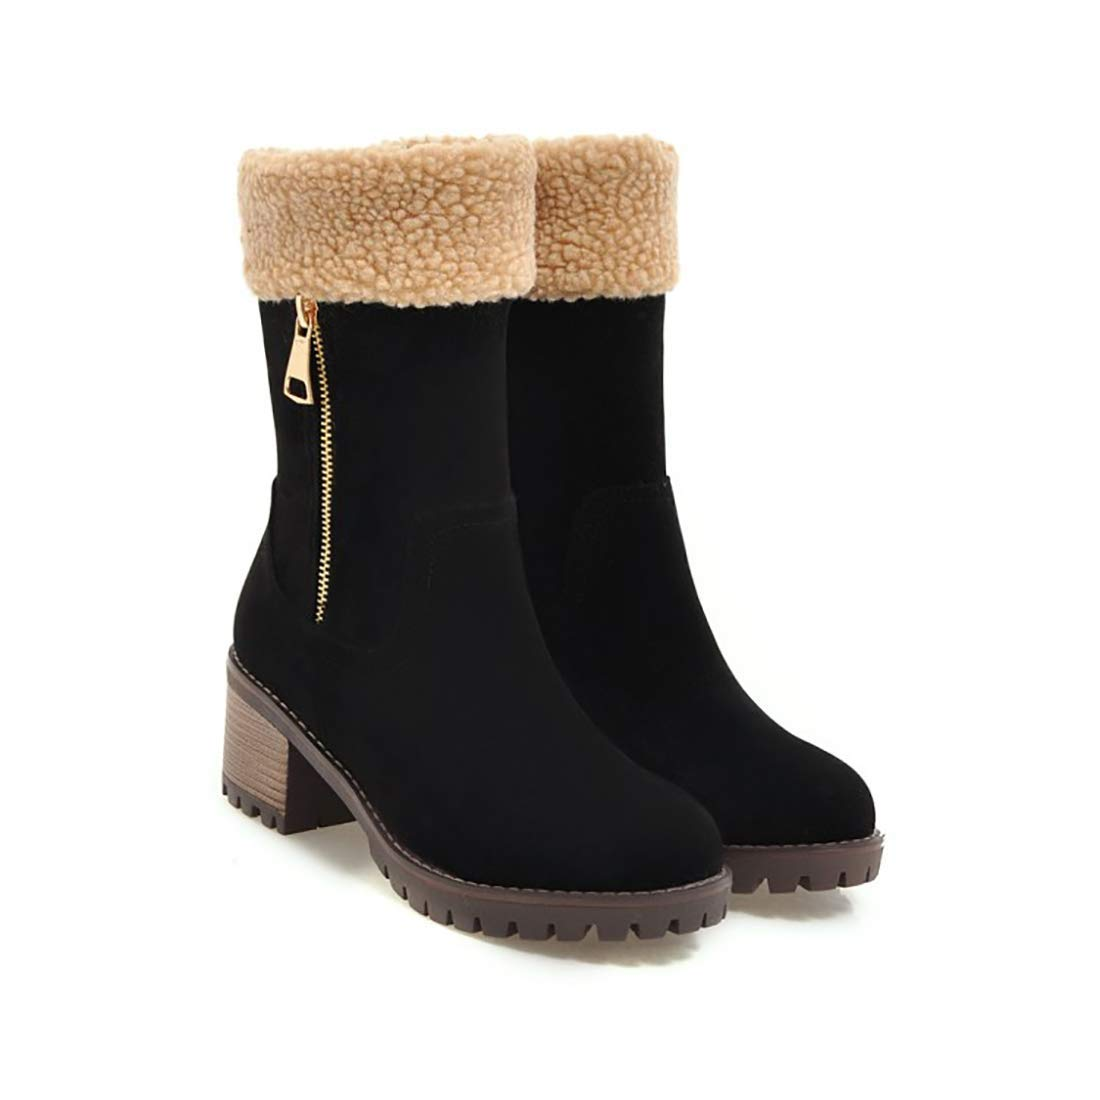 27d55291b88 Susanny Snow Boots for Women Suede Mid Calf Winter Zip Cute Booties Round  Toe Low Heel Warm Shoes